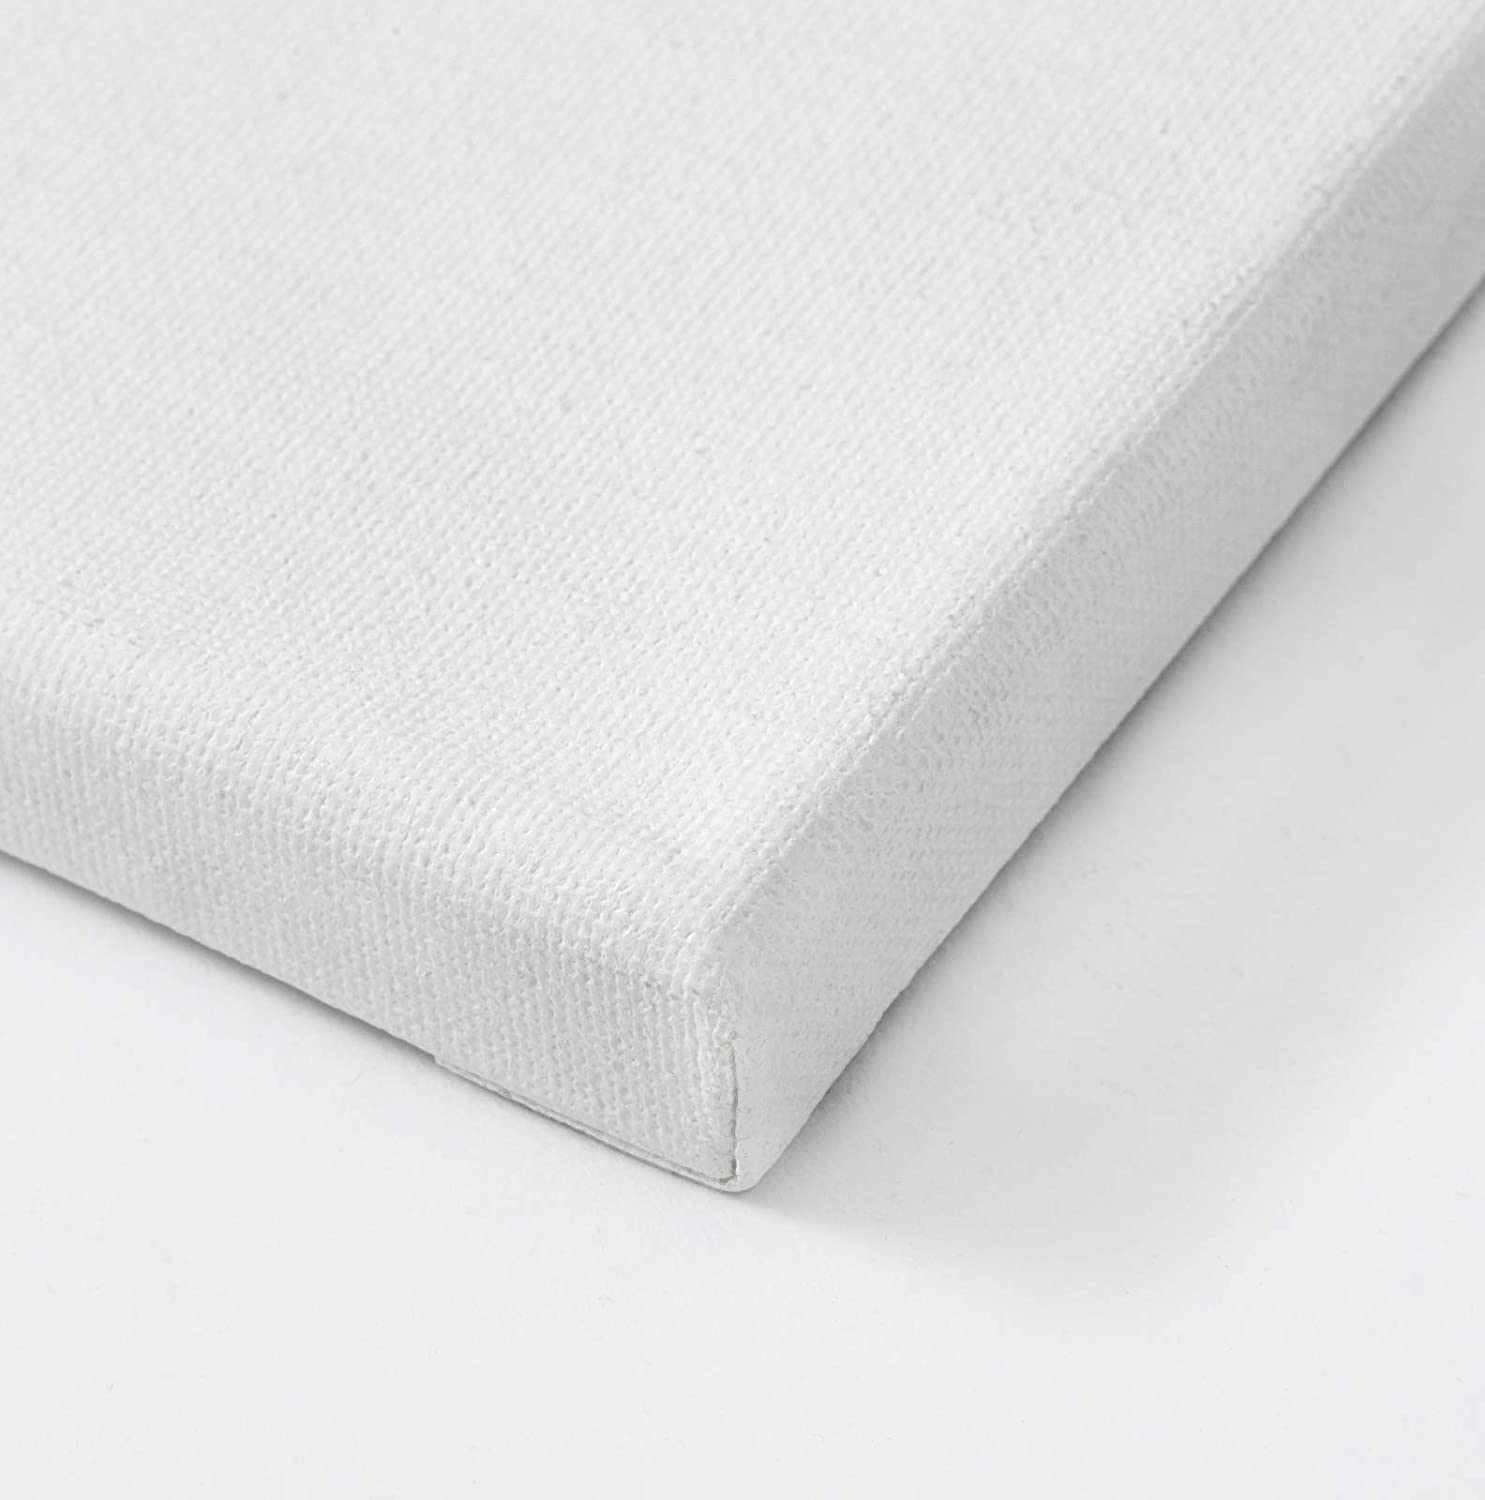 Americanflat Stretched Canvas in White 100/% Cotton Wooden Frames /& Acid Free